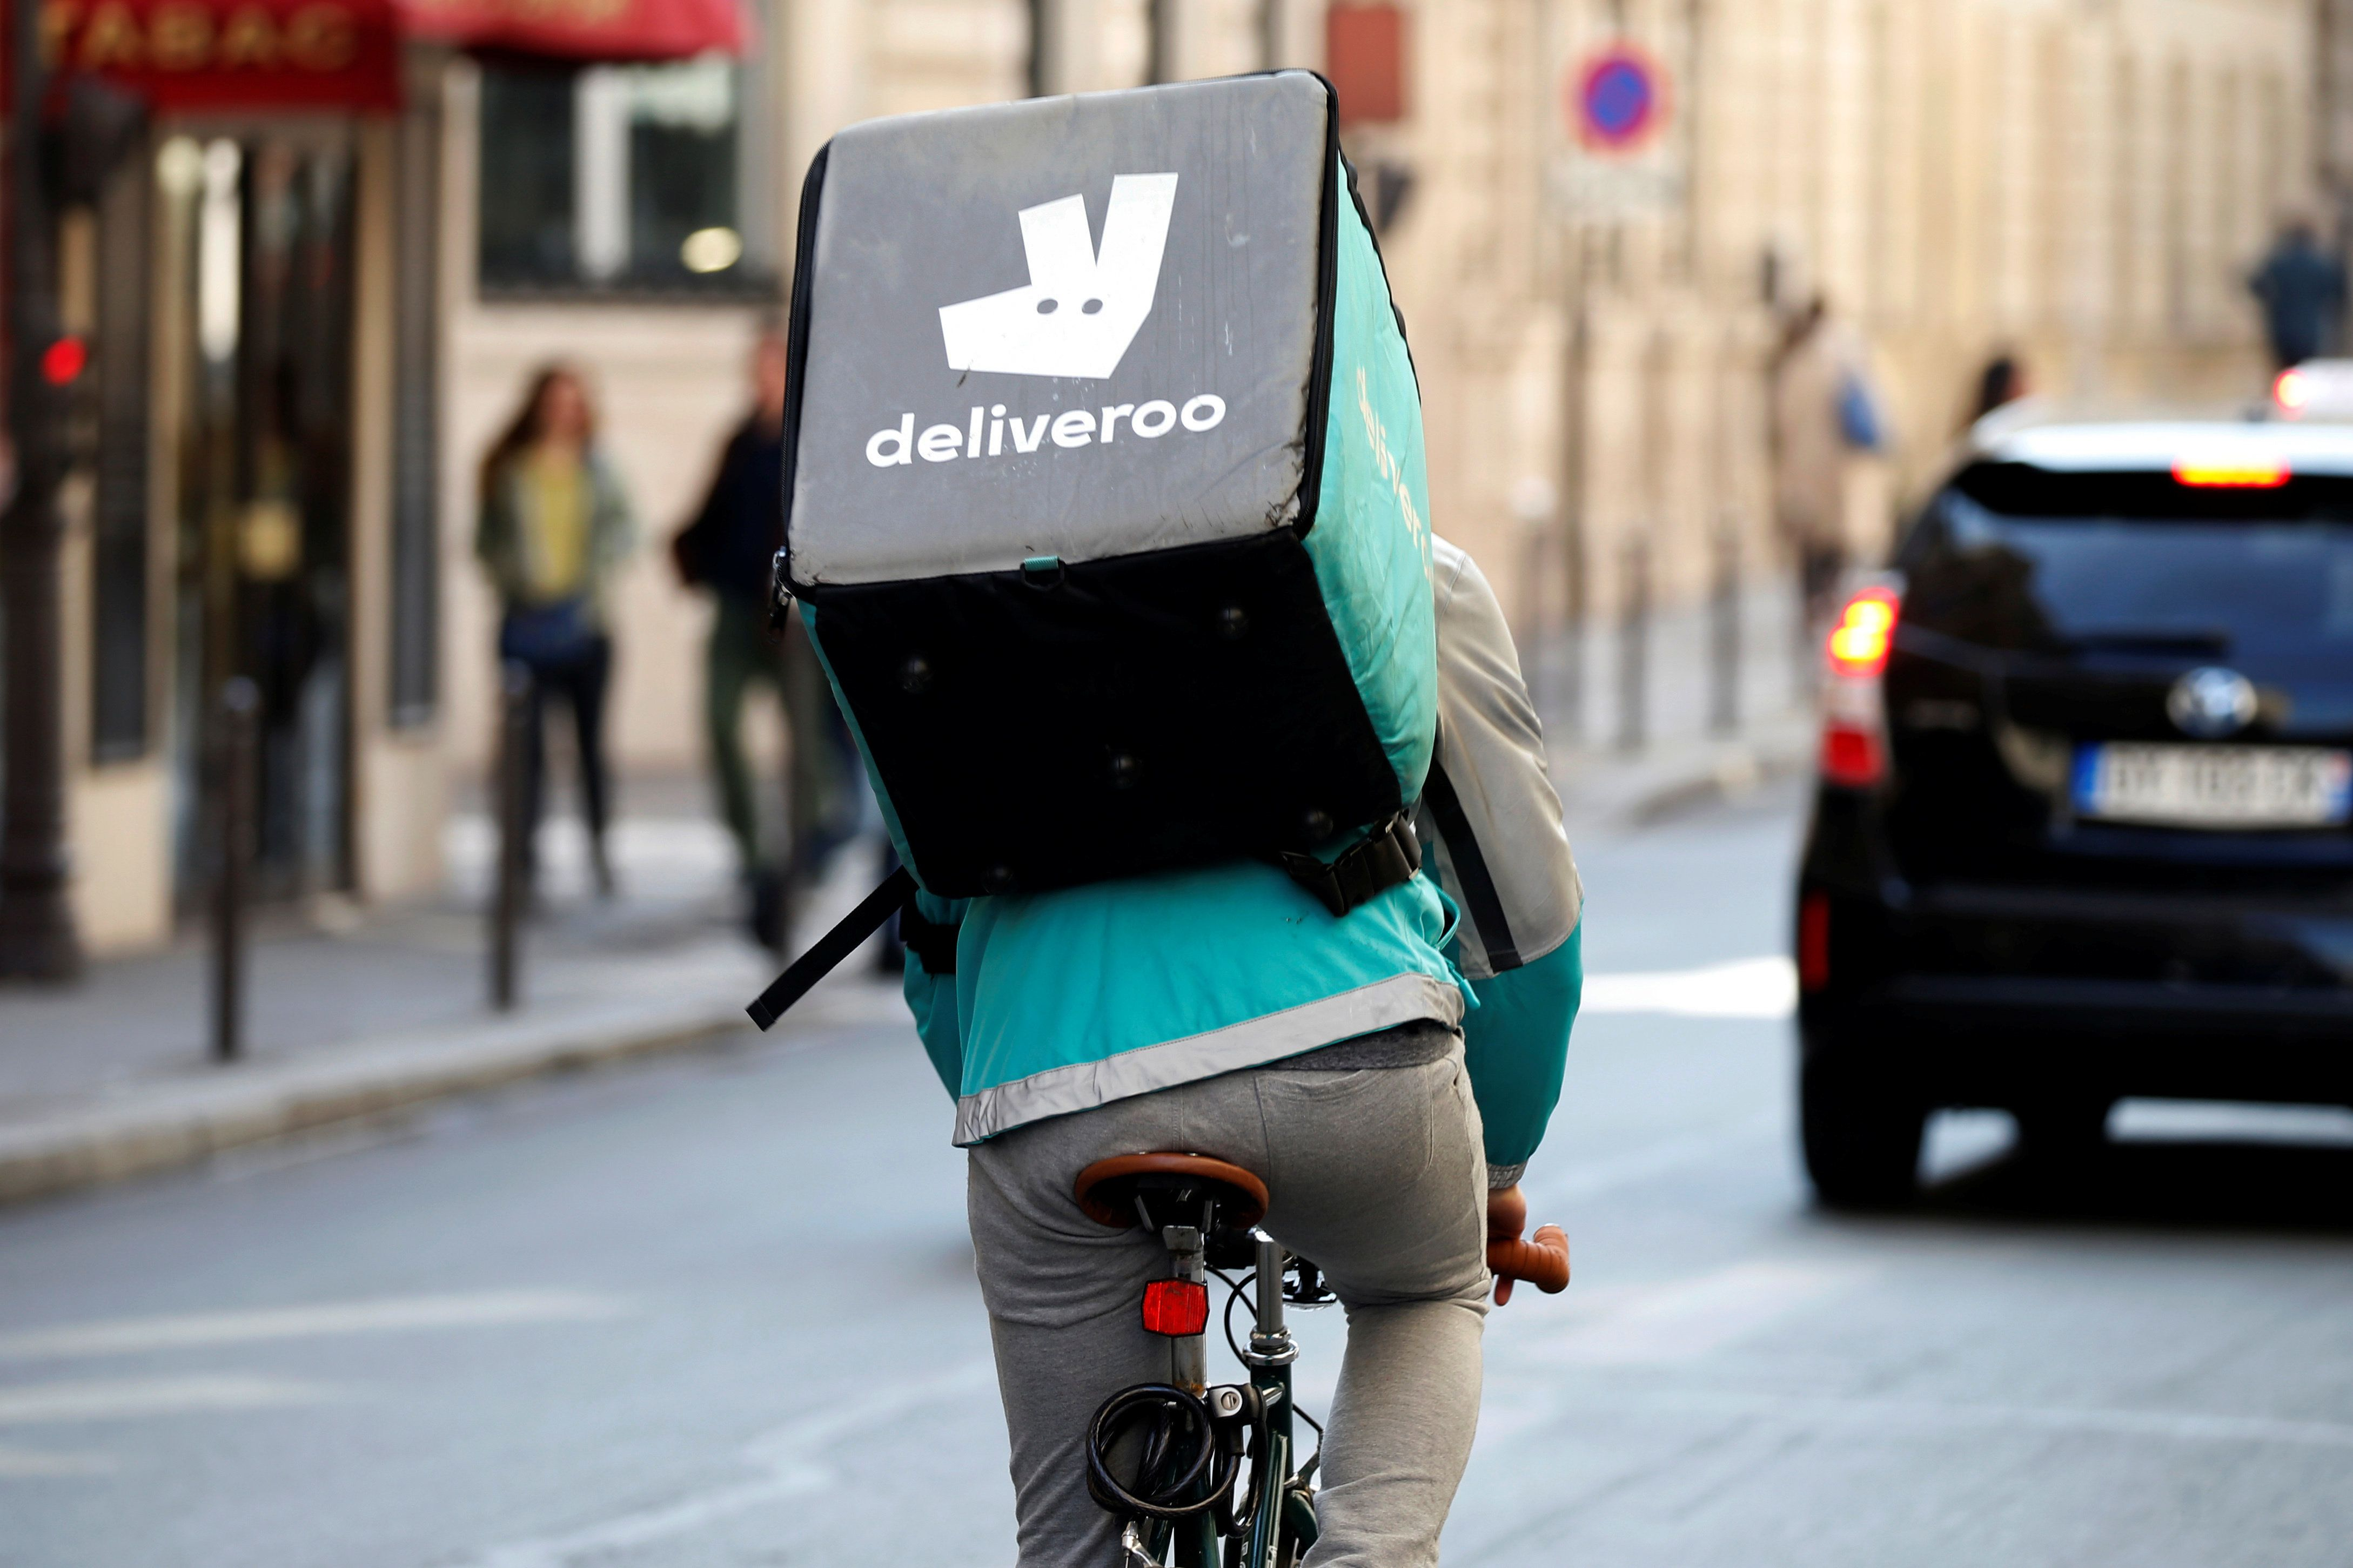 Union Wins First Stage Of High Court Challenge Over Deliveroo Riders In Gig Economy